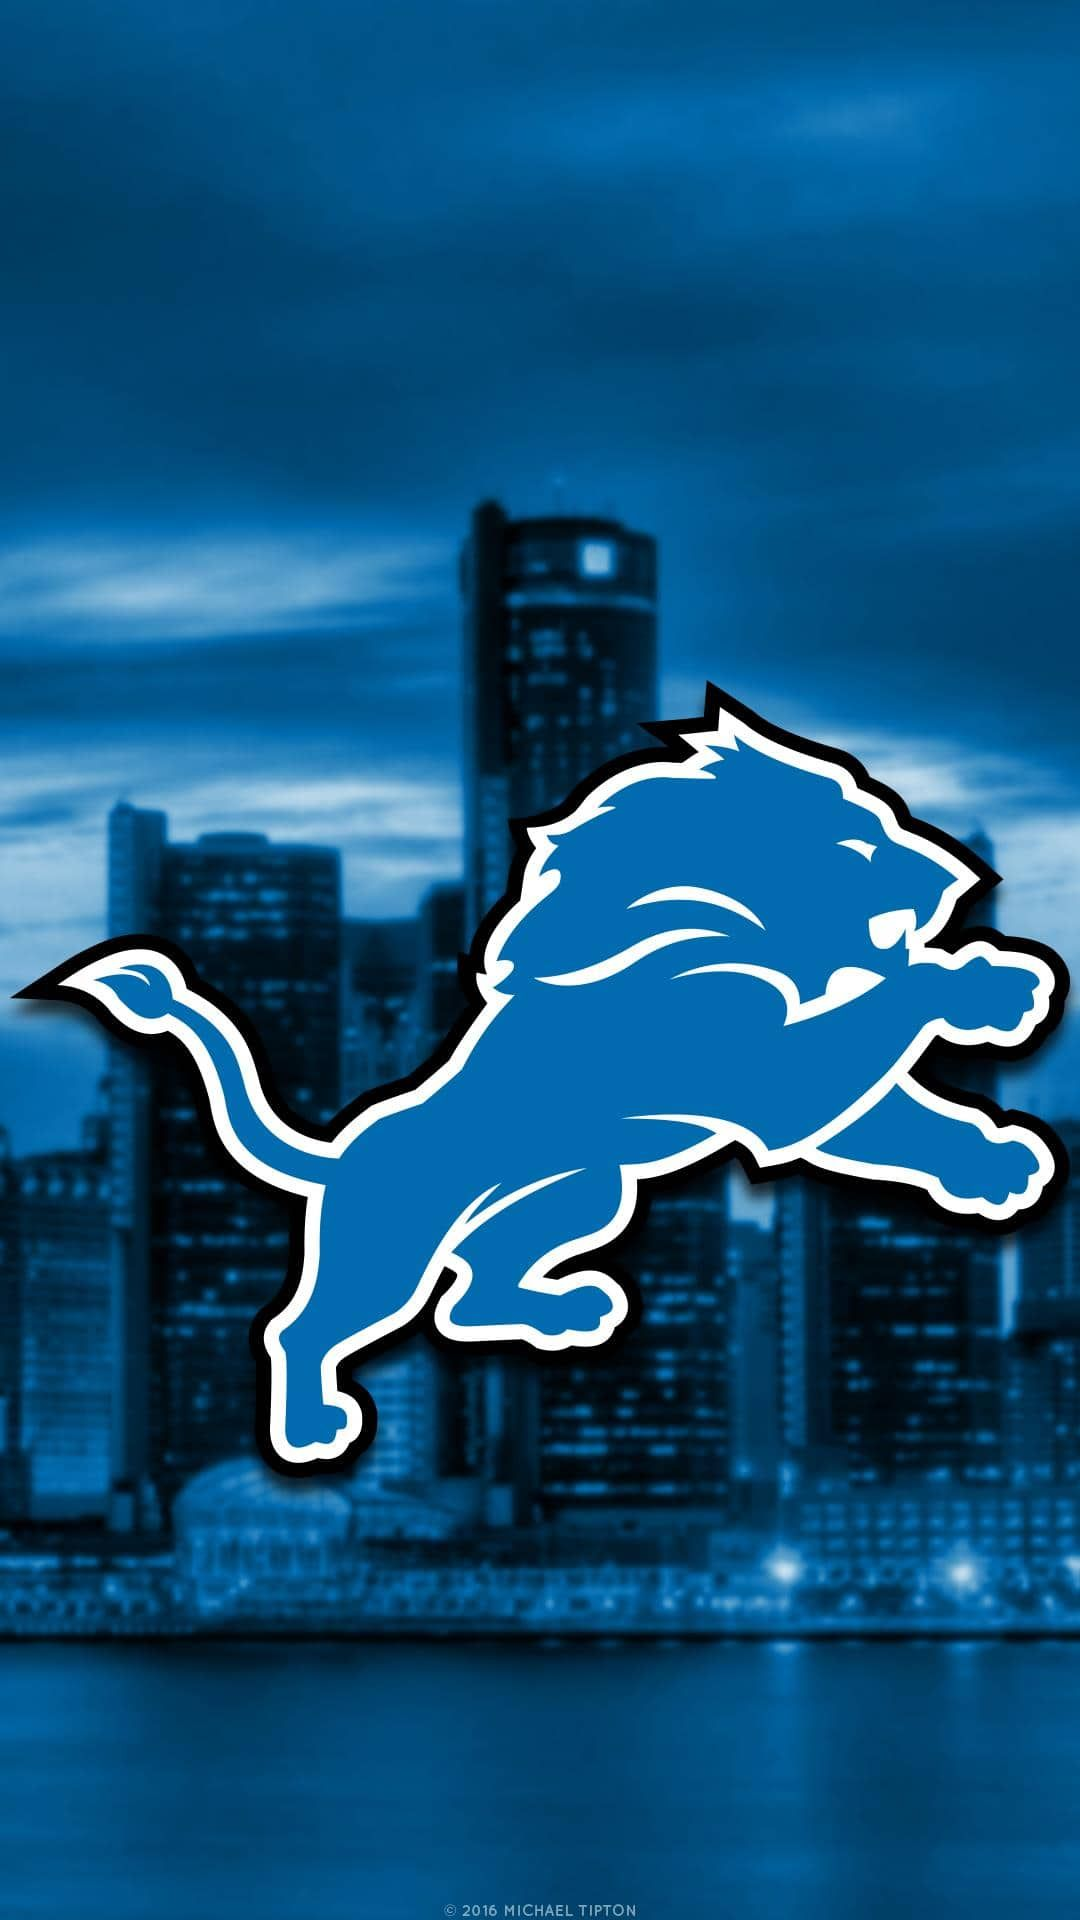 Black Detroit Lions Iphone Wallpapers Top Free Black Detroit Lions Iphone Backgrounds Wallpaperaccess